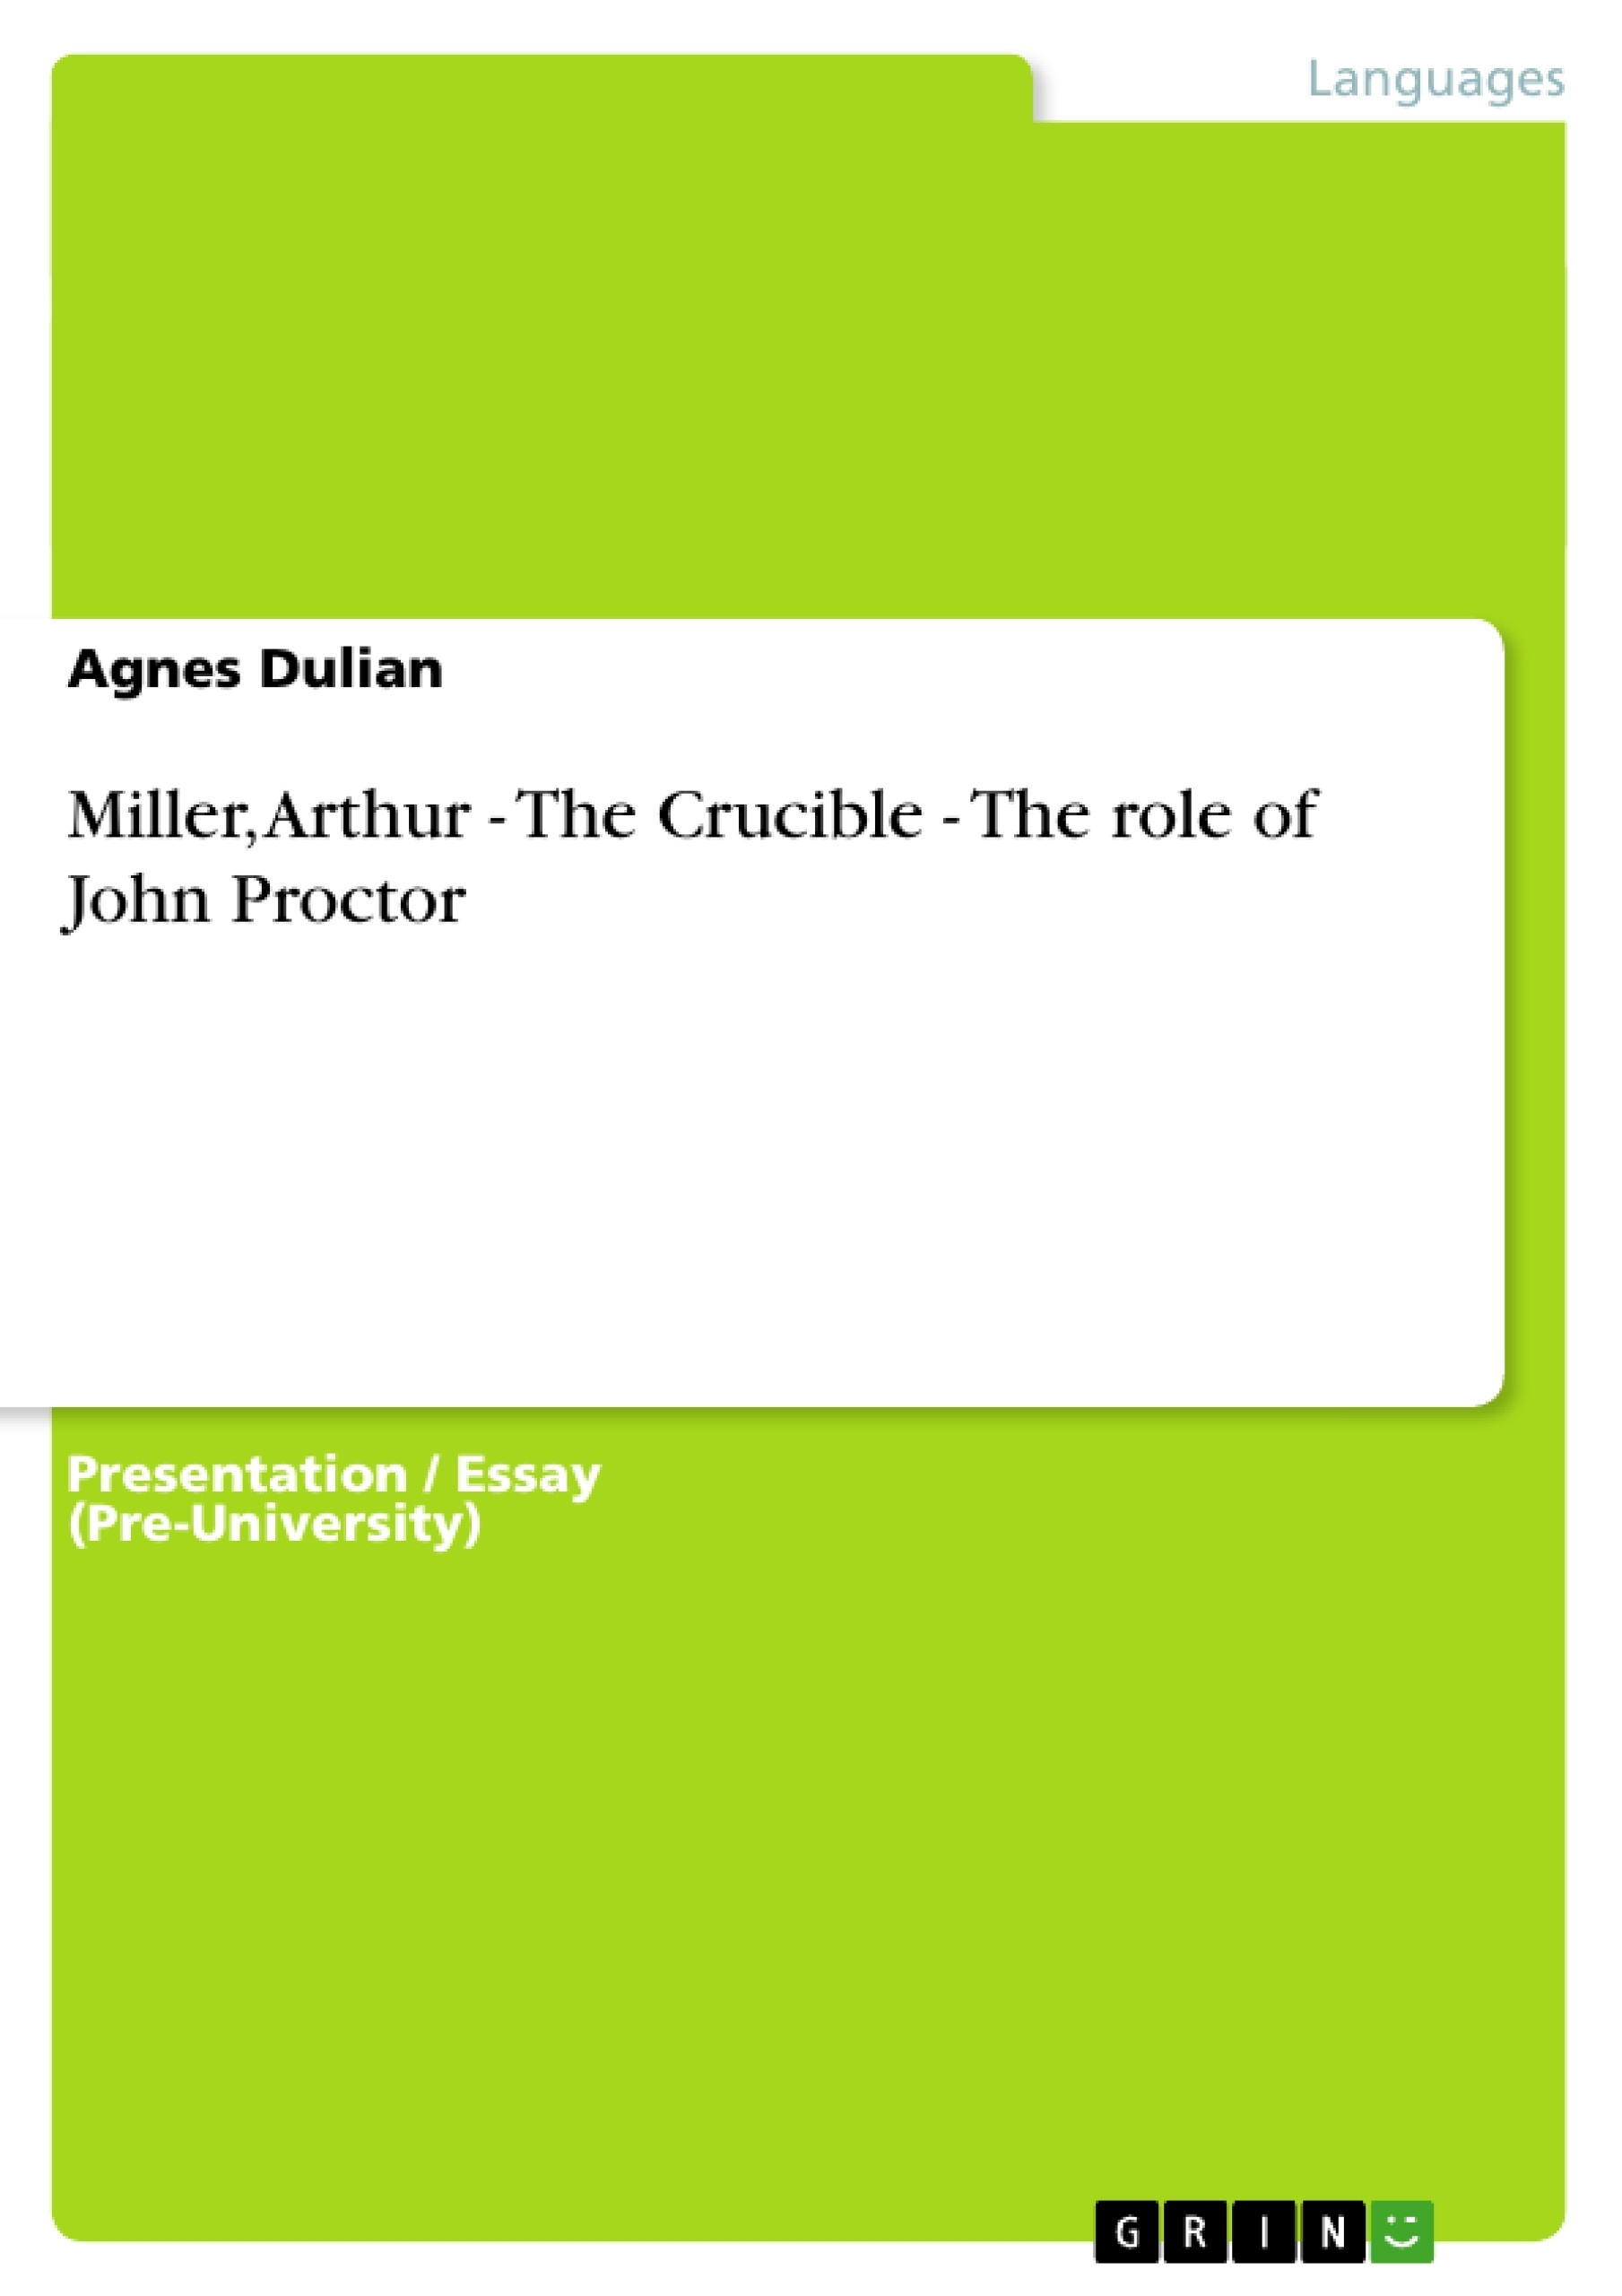 the crucible character analysis essay what is a critical analysis  miller arthur the crucible the role of john proctor publish miller arthur the crucible the role